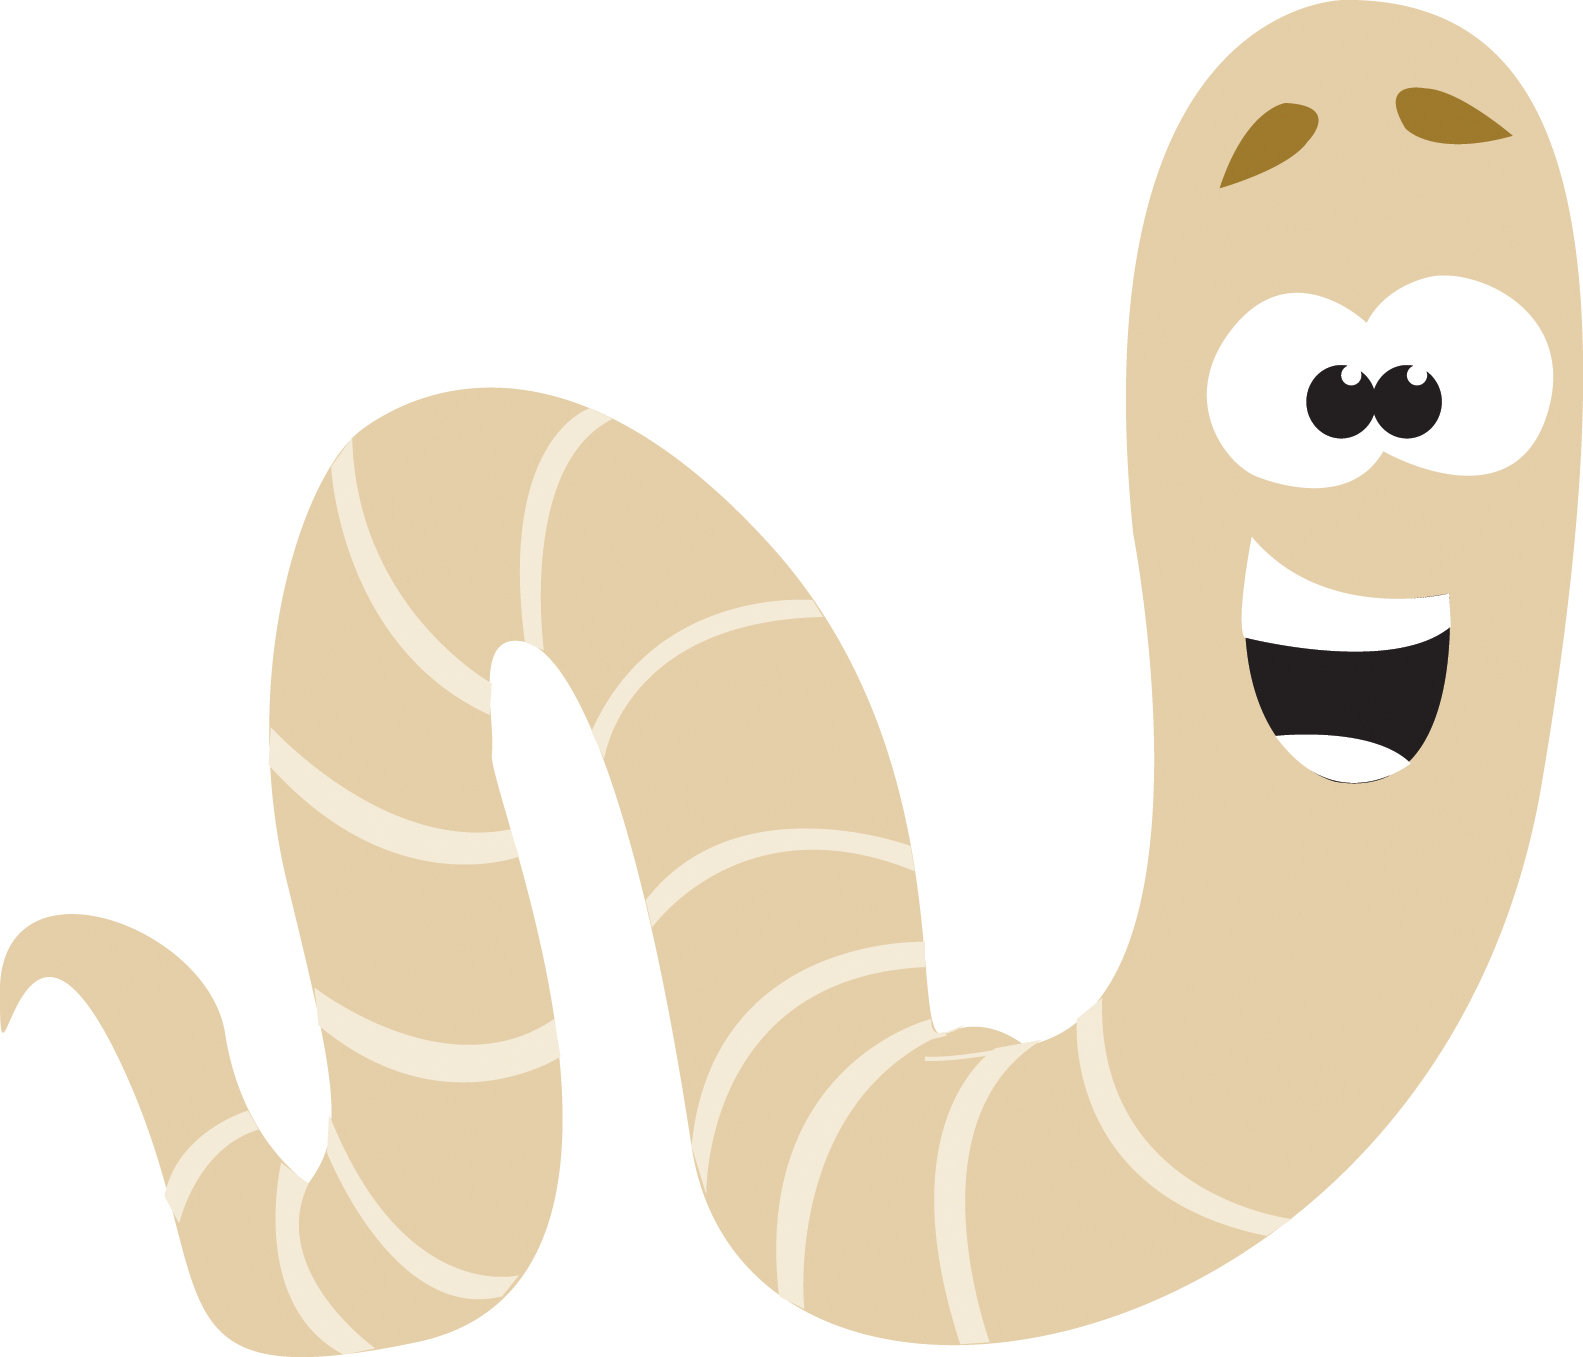 Free Earthworm Cliparts, Download Free Clip Art, Free Clip.